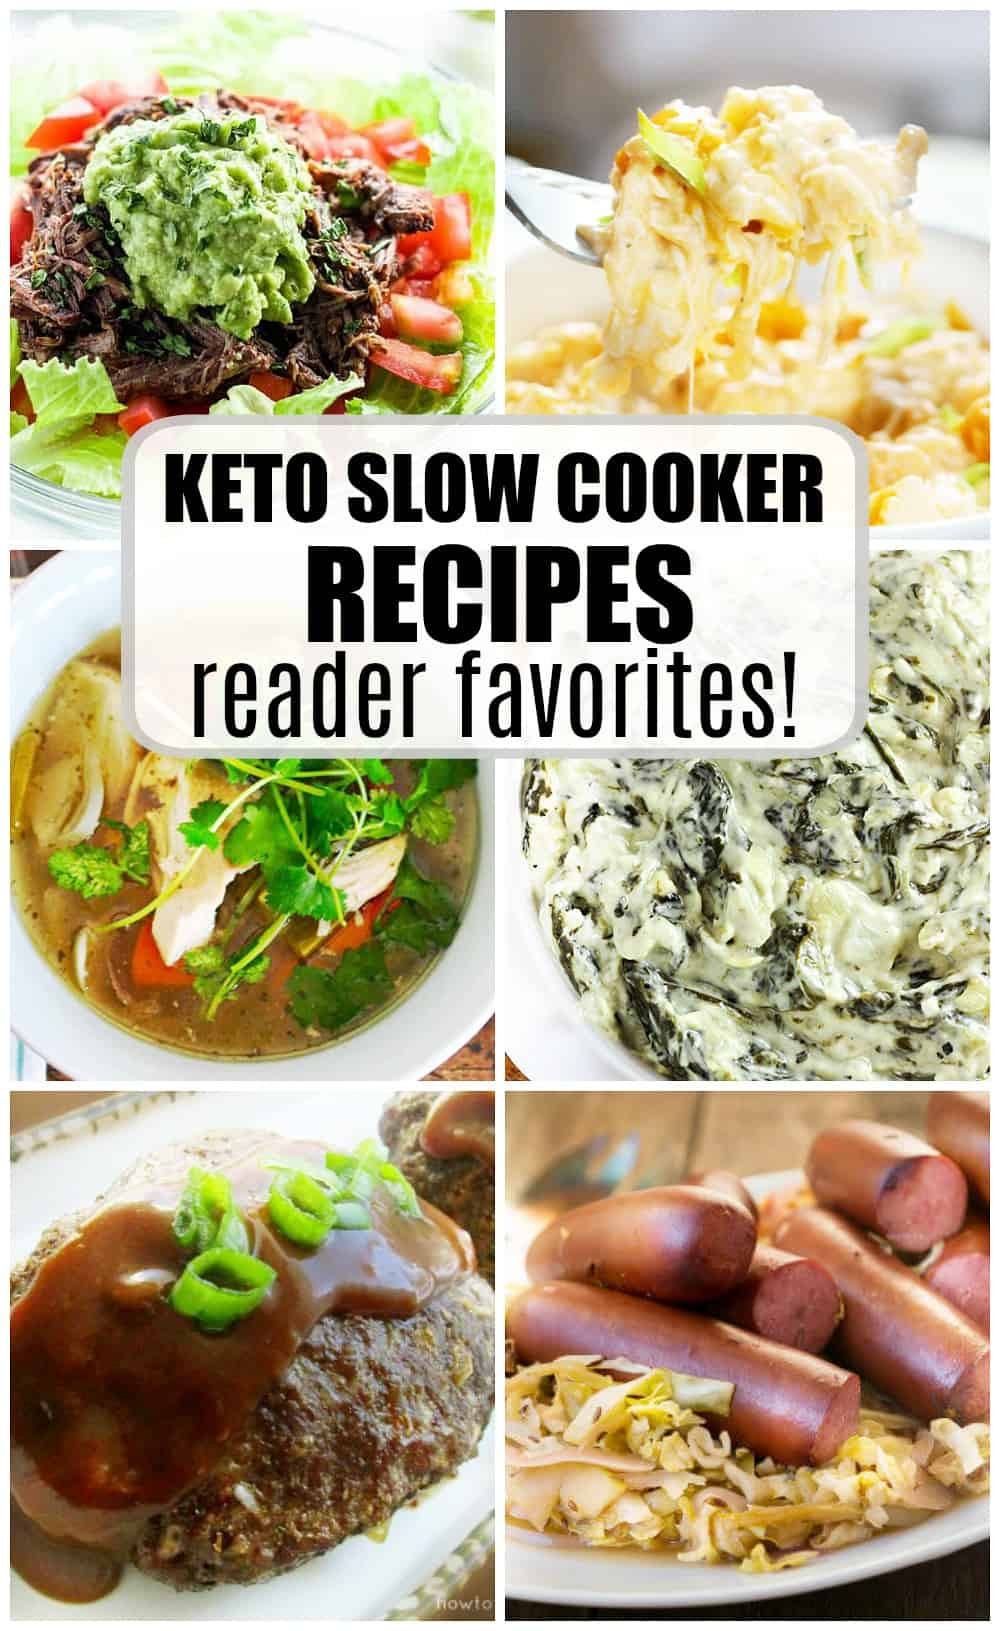 Slow Cooker Keto Recipes  KETO Slow Cooker Recipes Low Carb High Fat Some of the Best